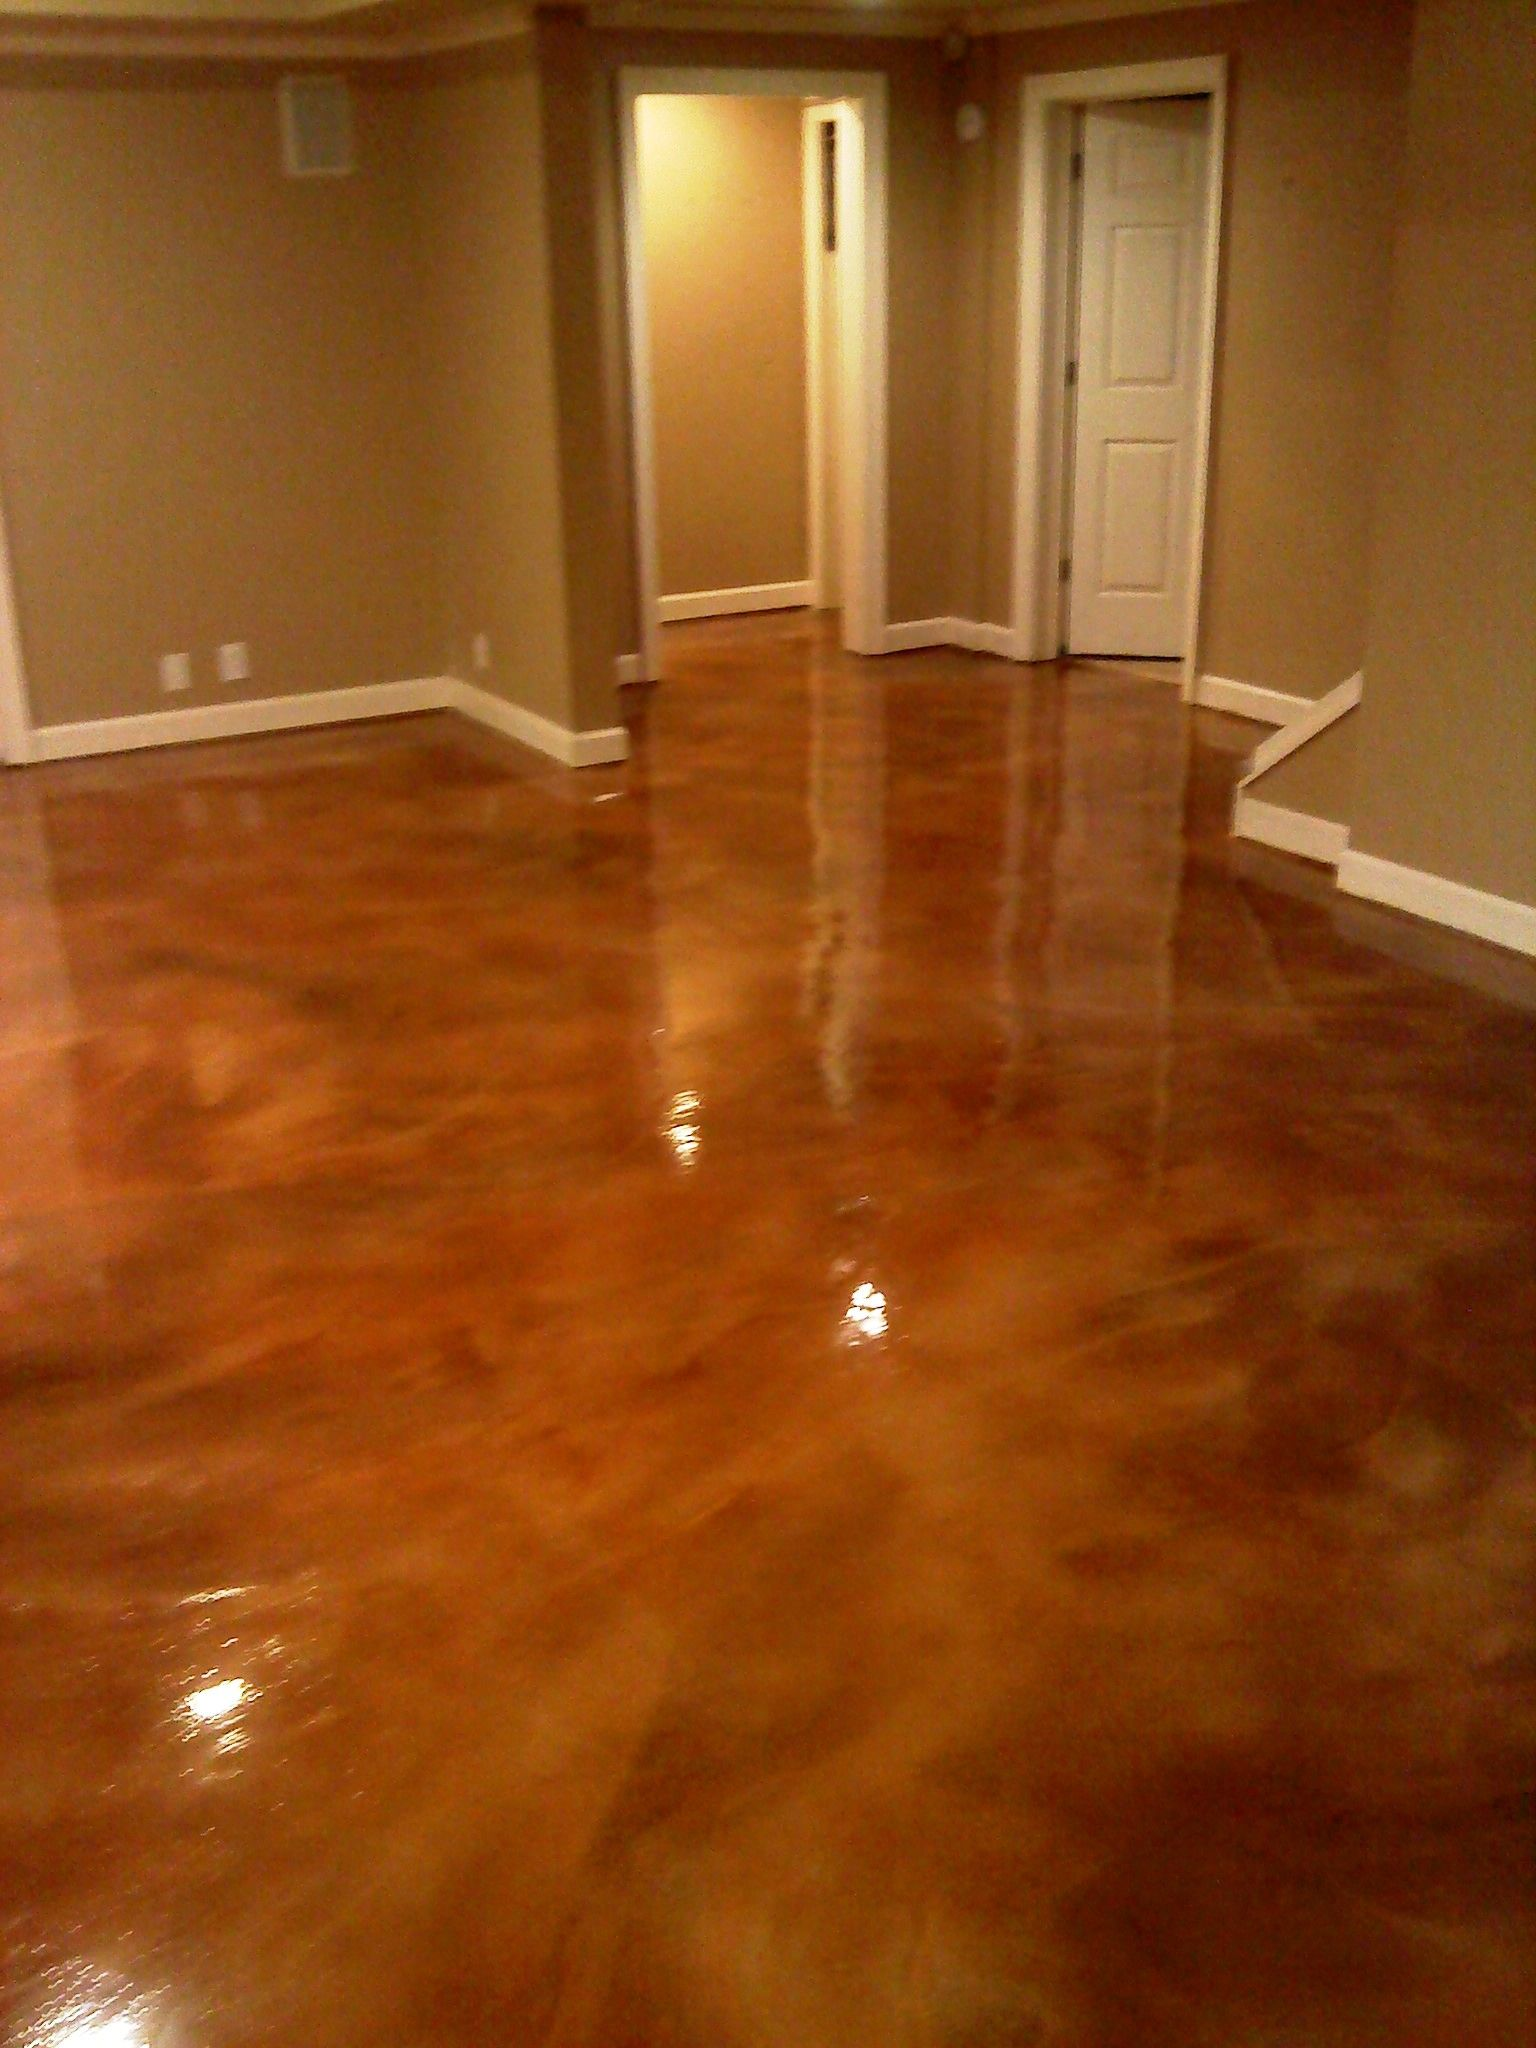 Since 1999 Stained Concrete By Peyton And Associates Has Installed Acid  Stained Concrete Floors In The Greater Houston Area. We Use Proprietary  Processes ...